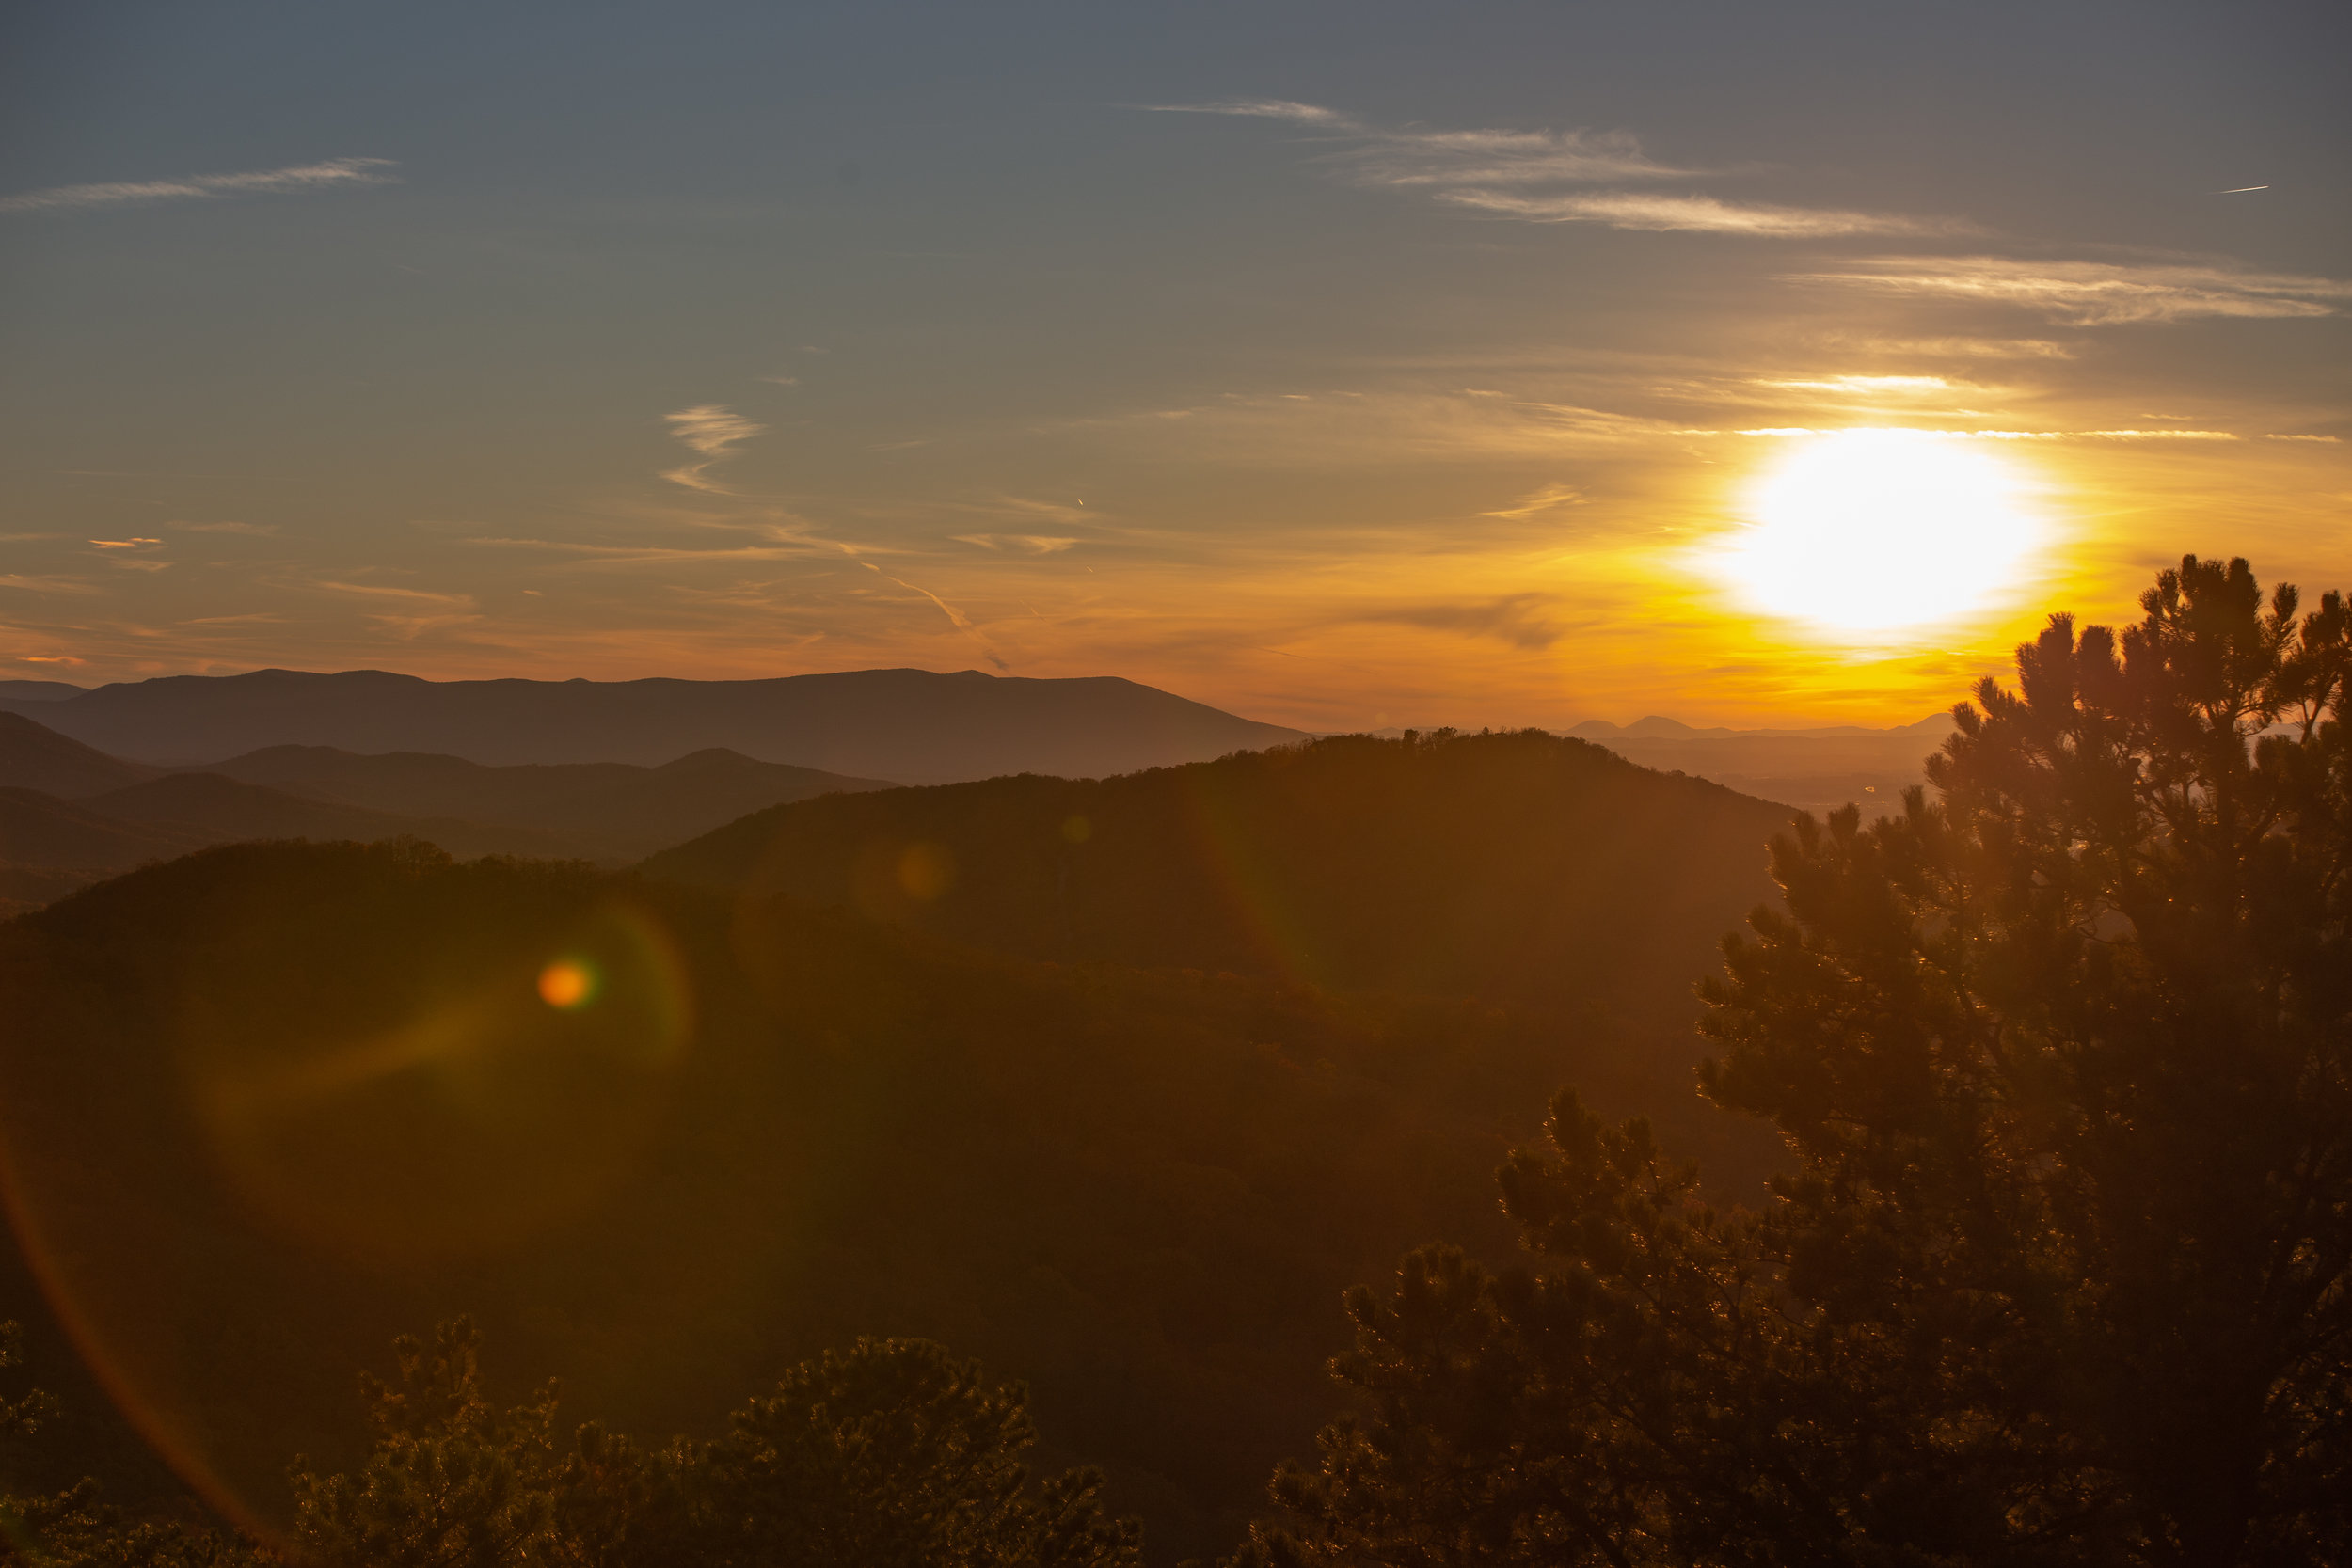 Shenandoah-National-Park-blue-ridge-parkway-day-mountains-afternoon-haze-layers-distance-texture-trees-fall-sunset-evening-sunflare